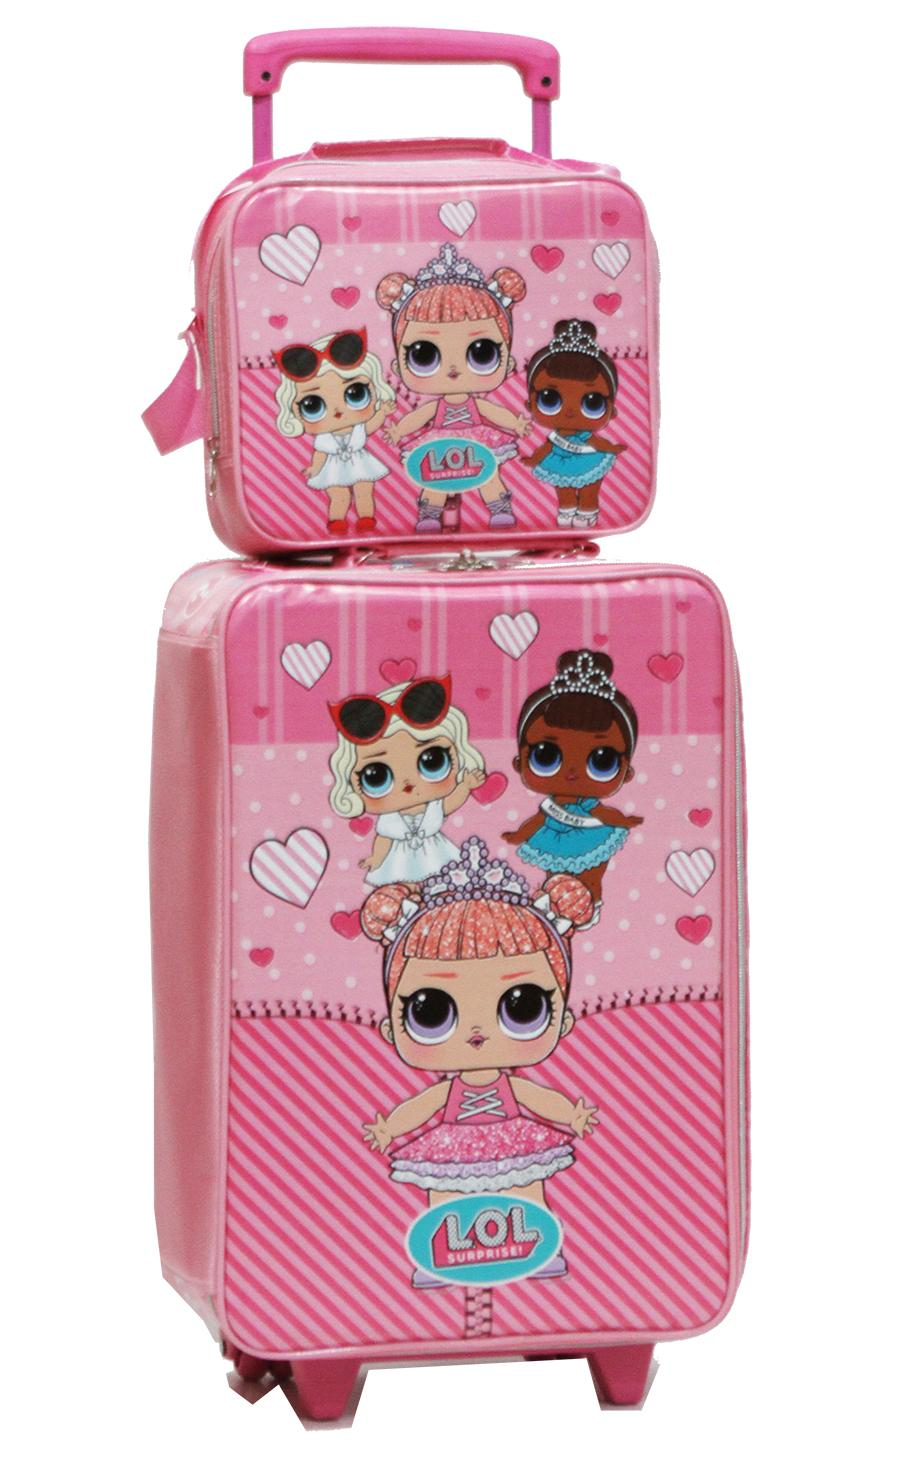 Onlan Set Koper dan Lunch Bag Anak Bahan Sponge Tahan Air LOL - Little Pony -